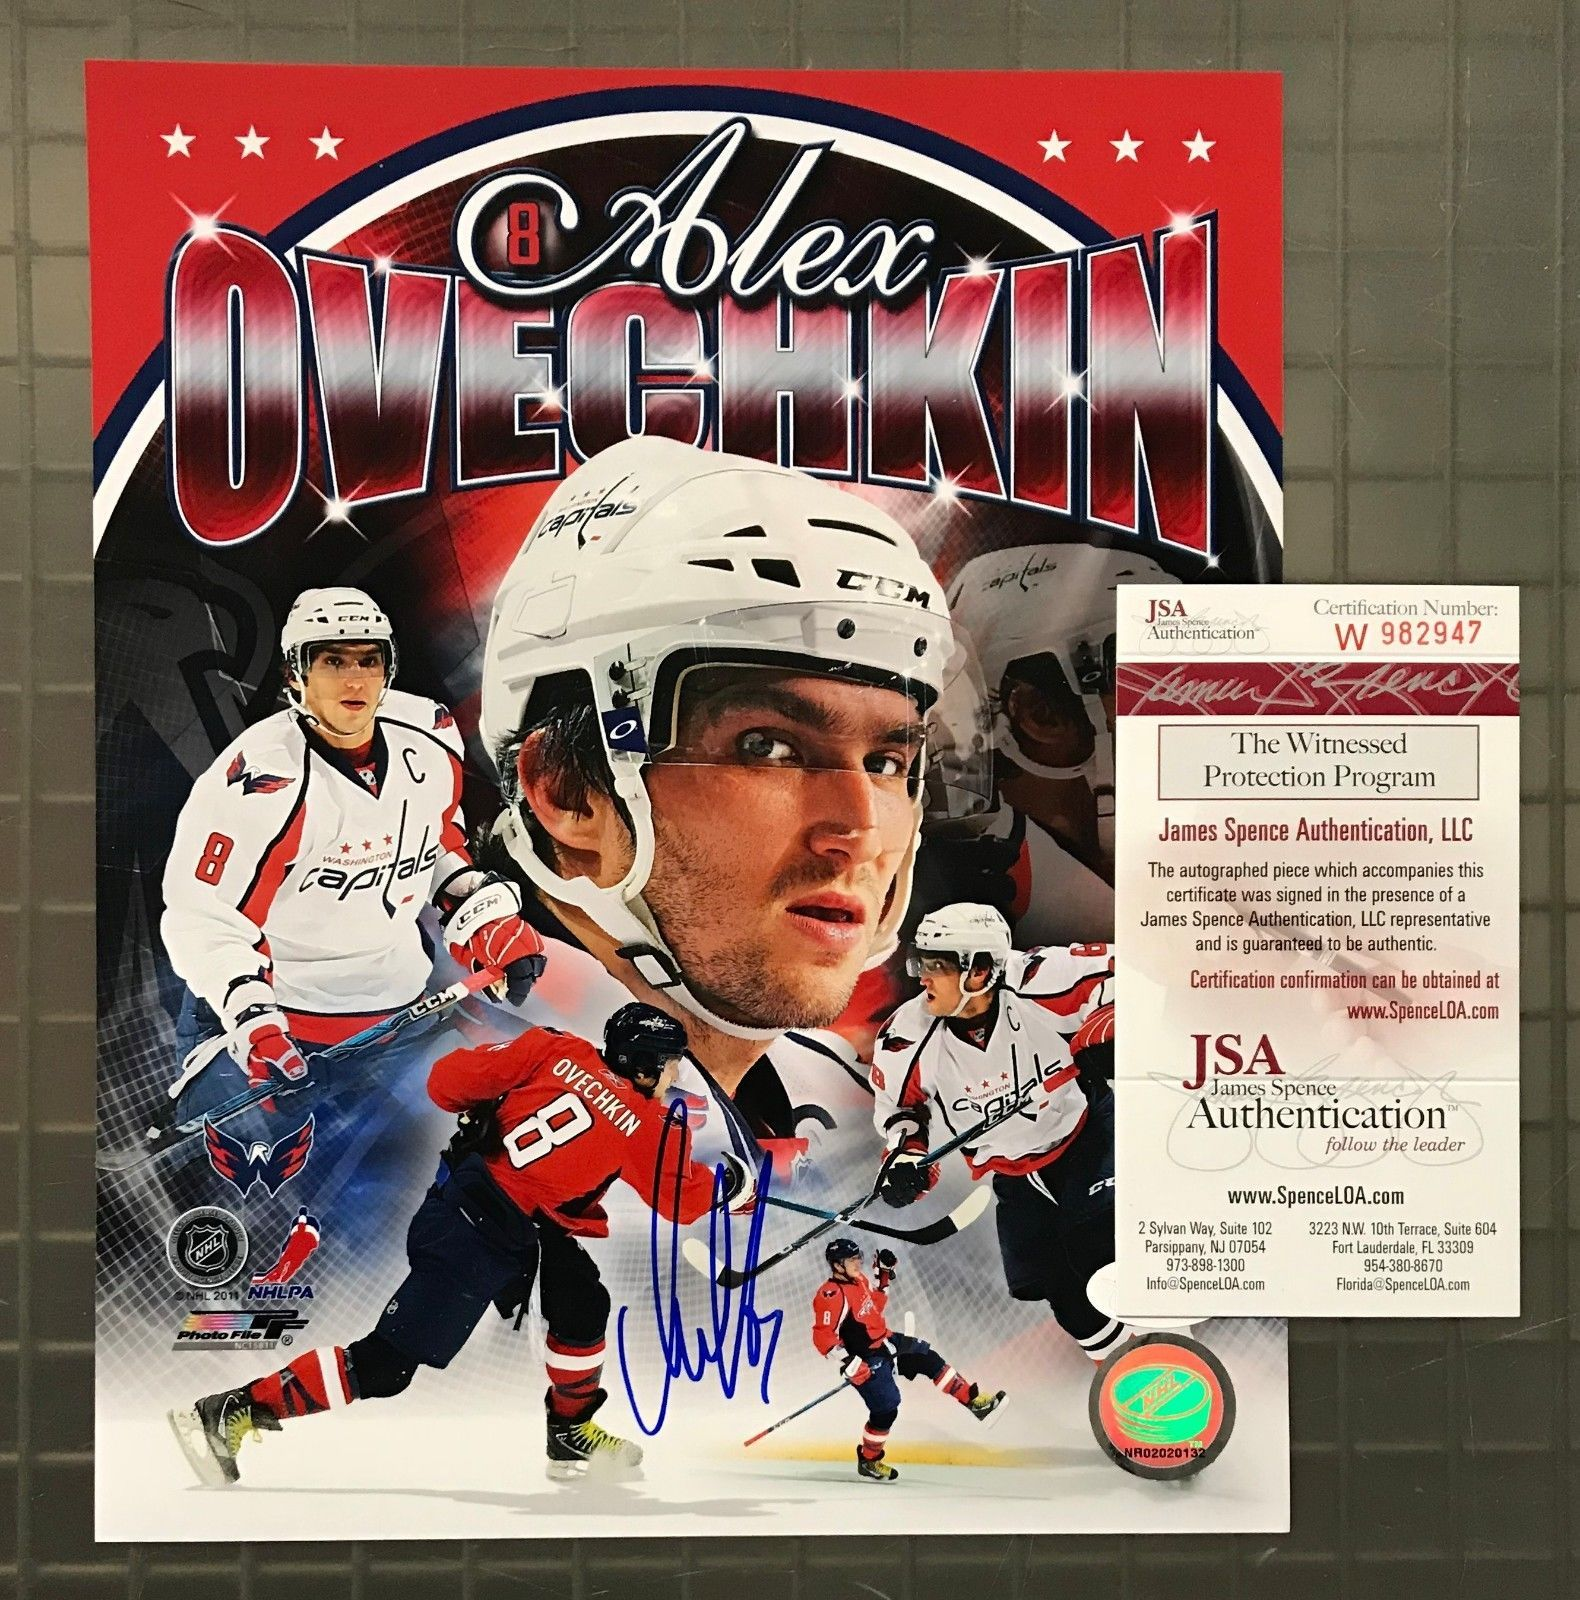 8d98f71b101 Alexander Ovechkin Signed 8x10 Photo Autographed AUTO JSA WITNESSED COA  Capitals  Hockey